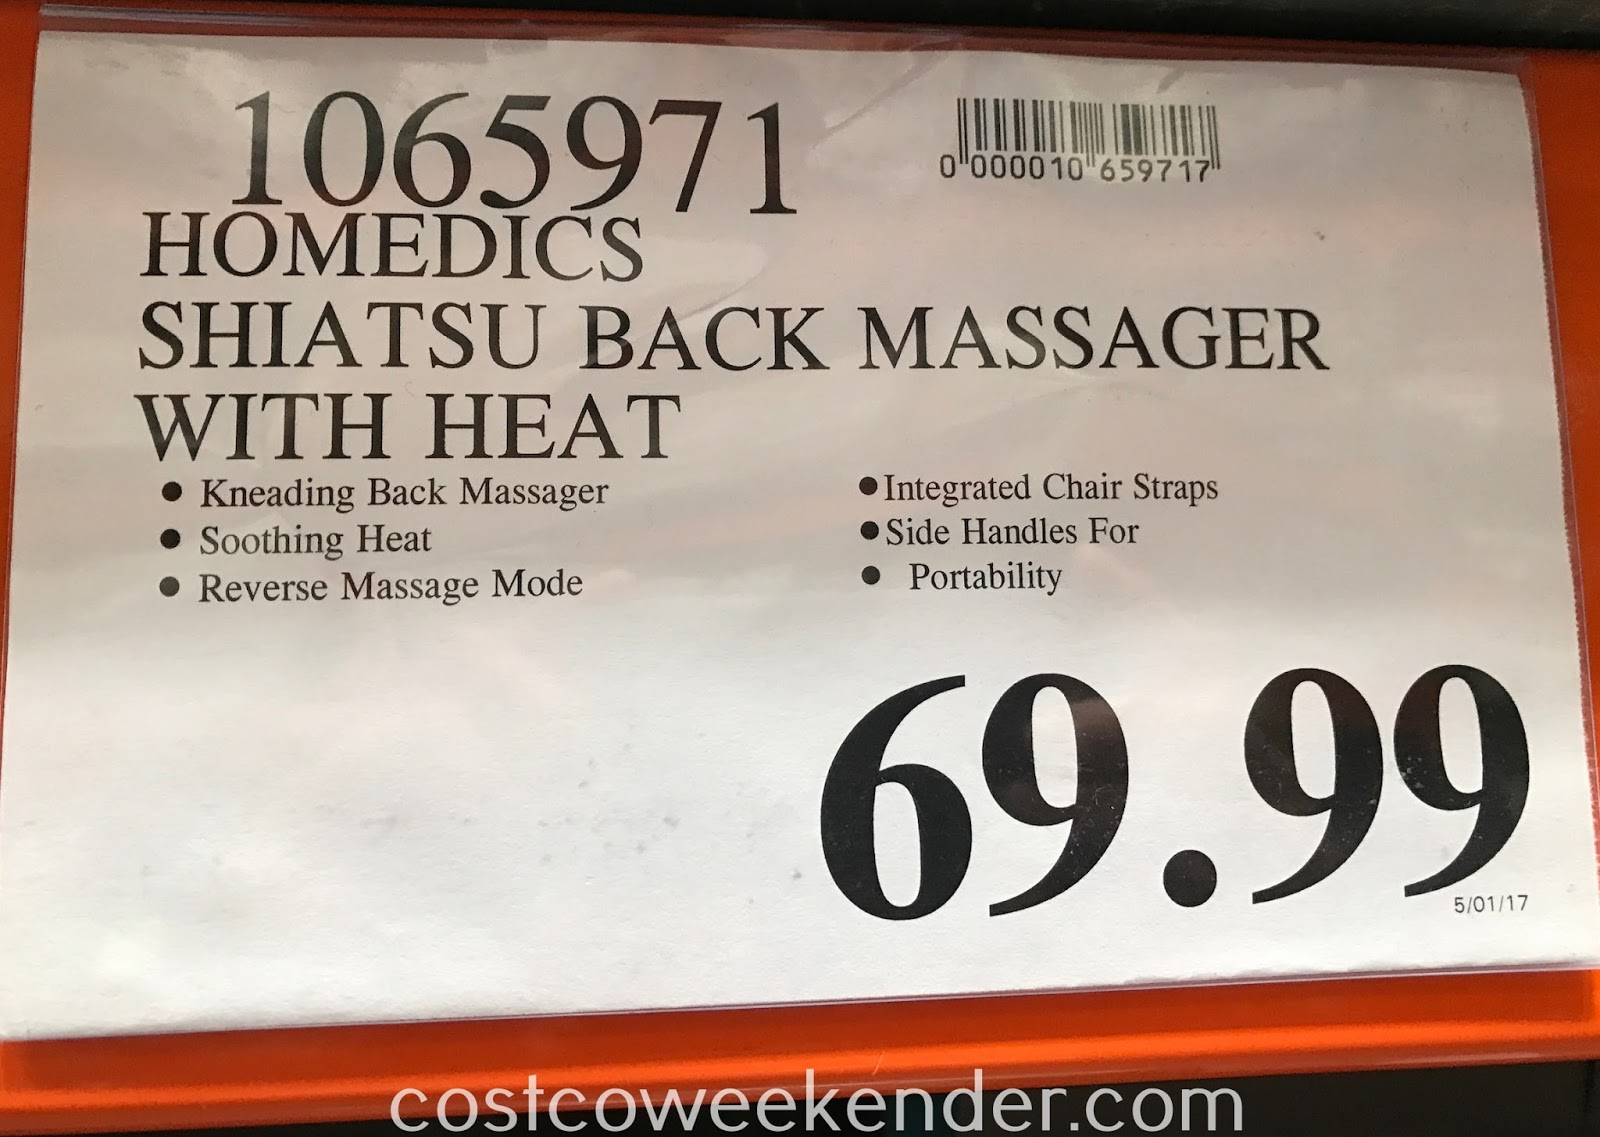 Deal for the HoMedics Shiatsu Back Massager with Heat at Costco